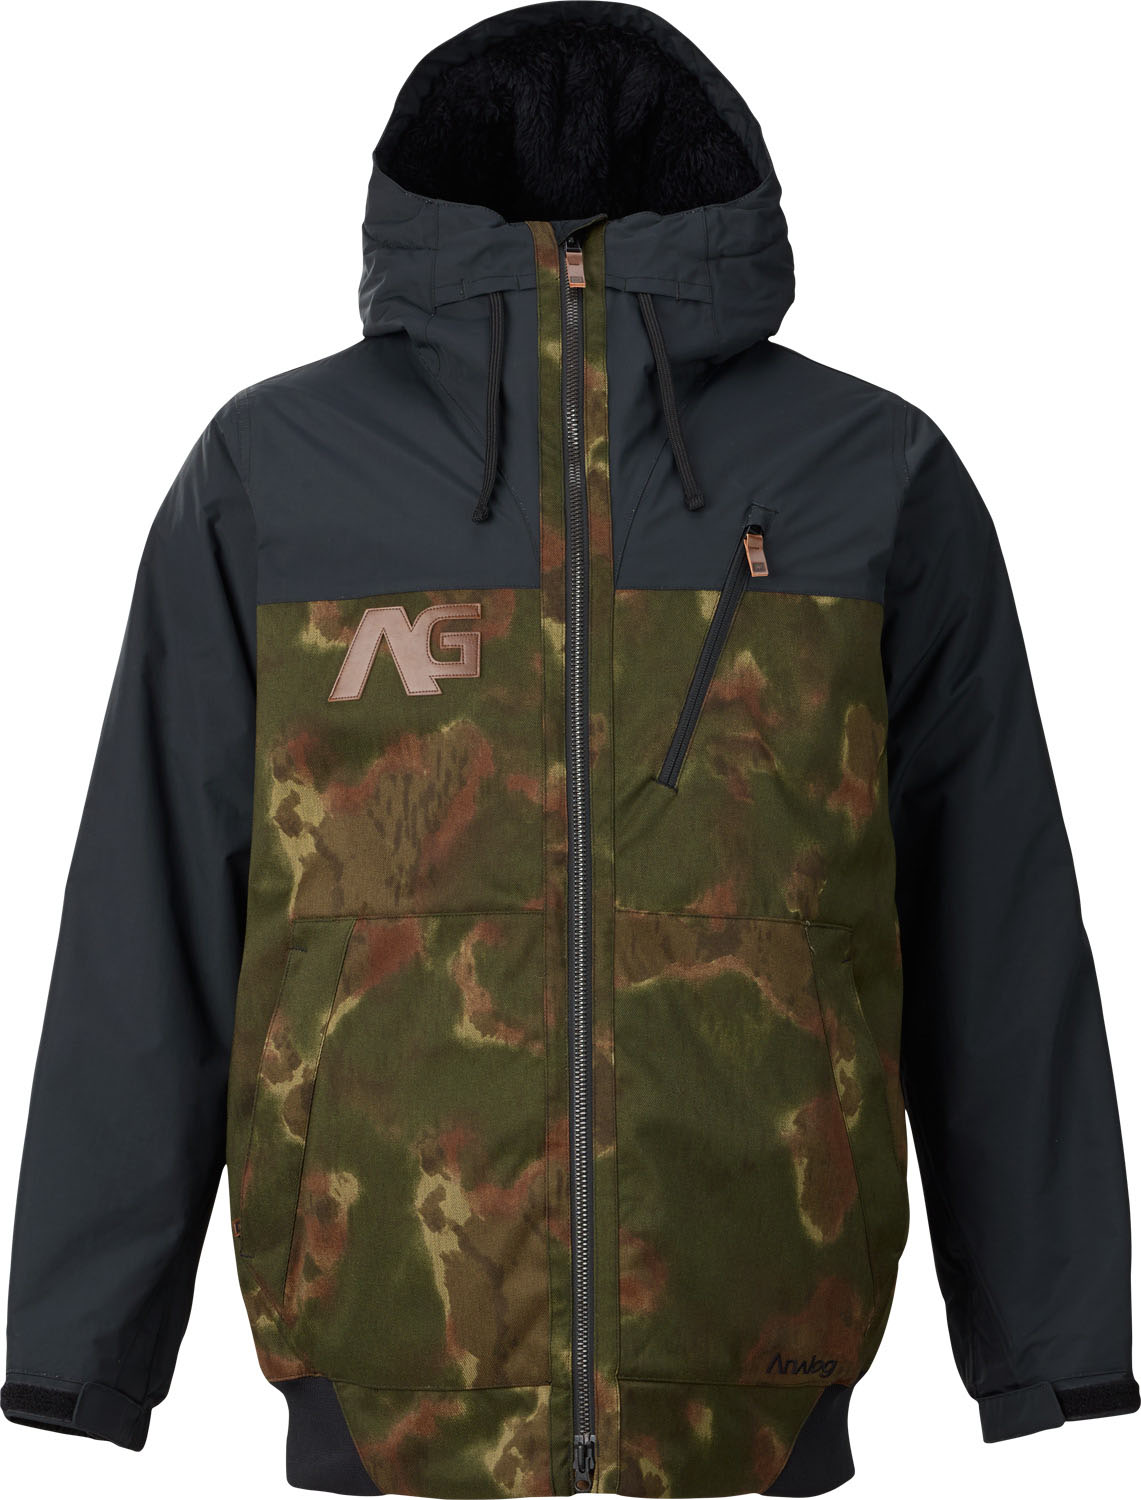 image analog-greed-snwbrd-jacket-ink-blot-camo-black-16-jpg